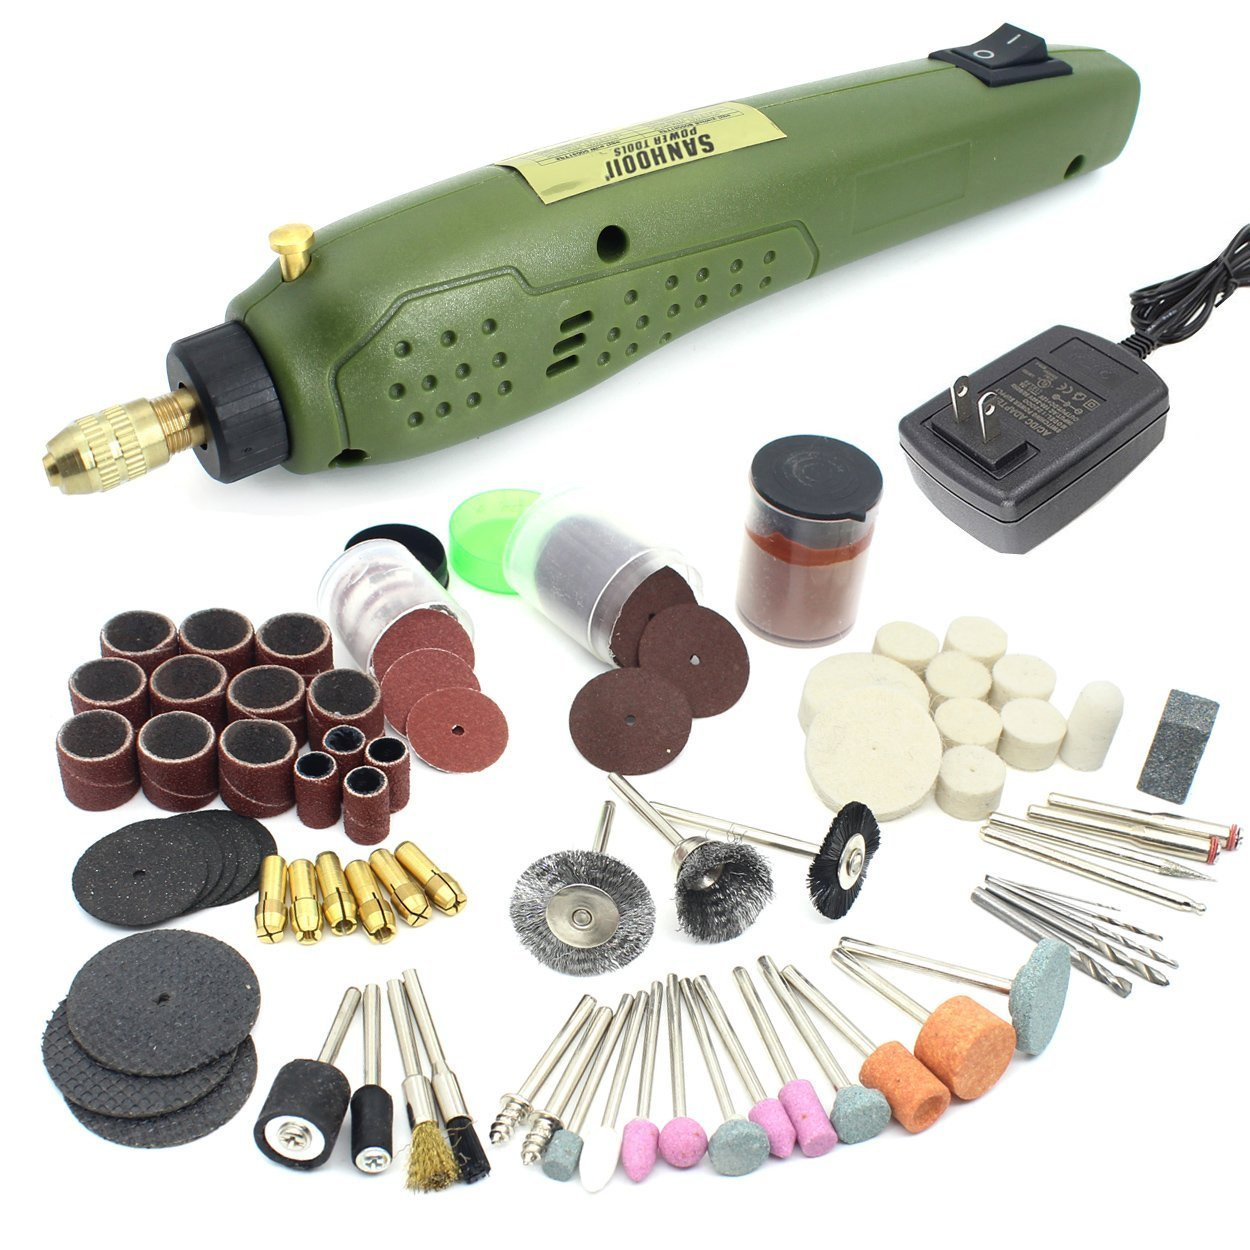 Mini Electric Drill Rotary Tool With Accessories Set DIY Hand Tool Kit For Wood Jade Stone Small Crafts Cutting Drilling Grinding Sculpture